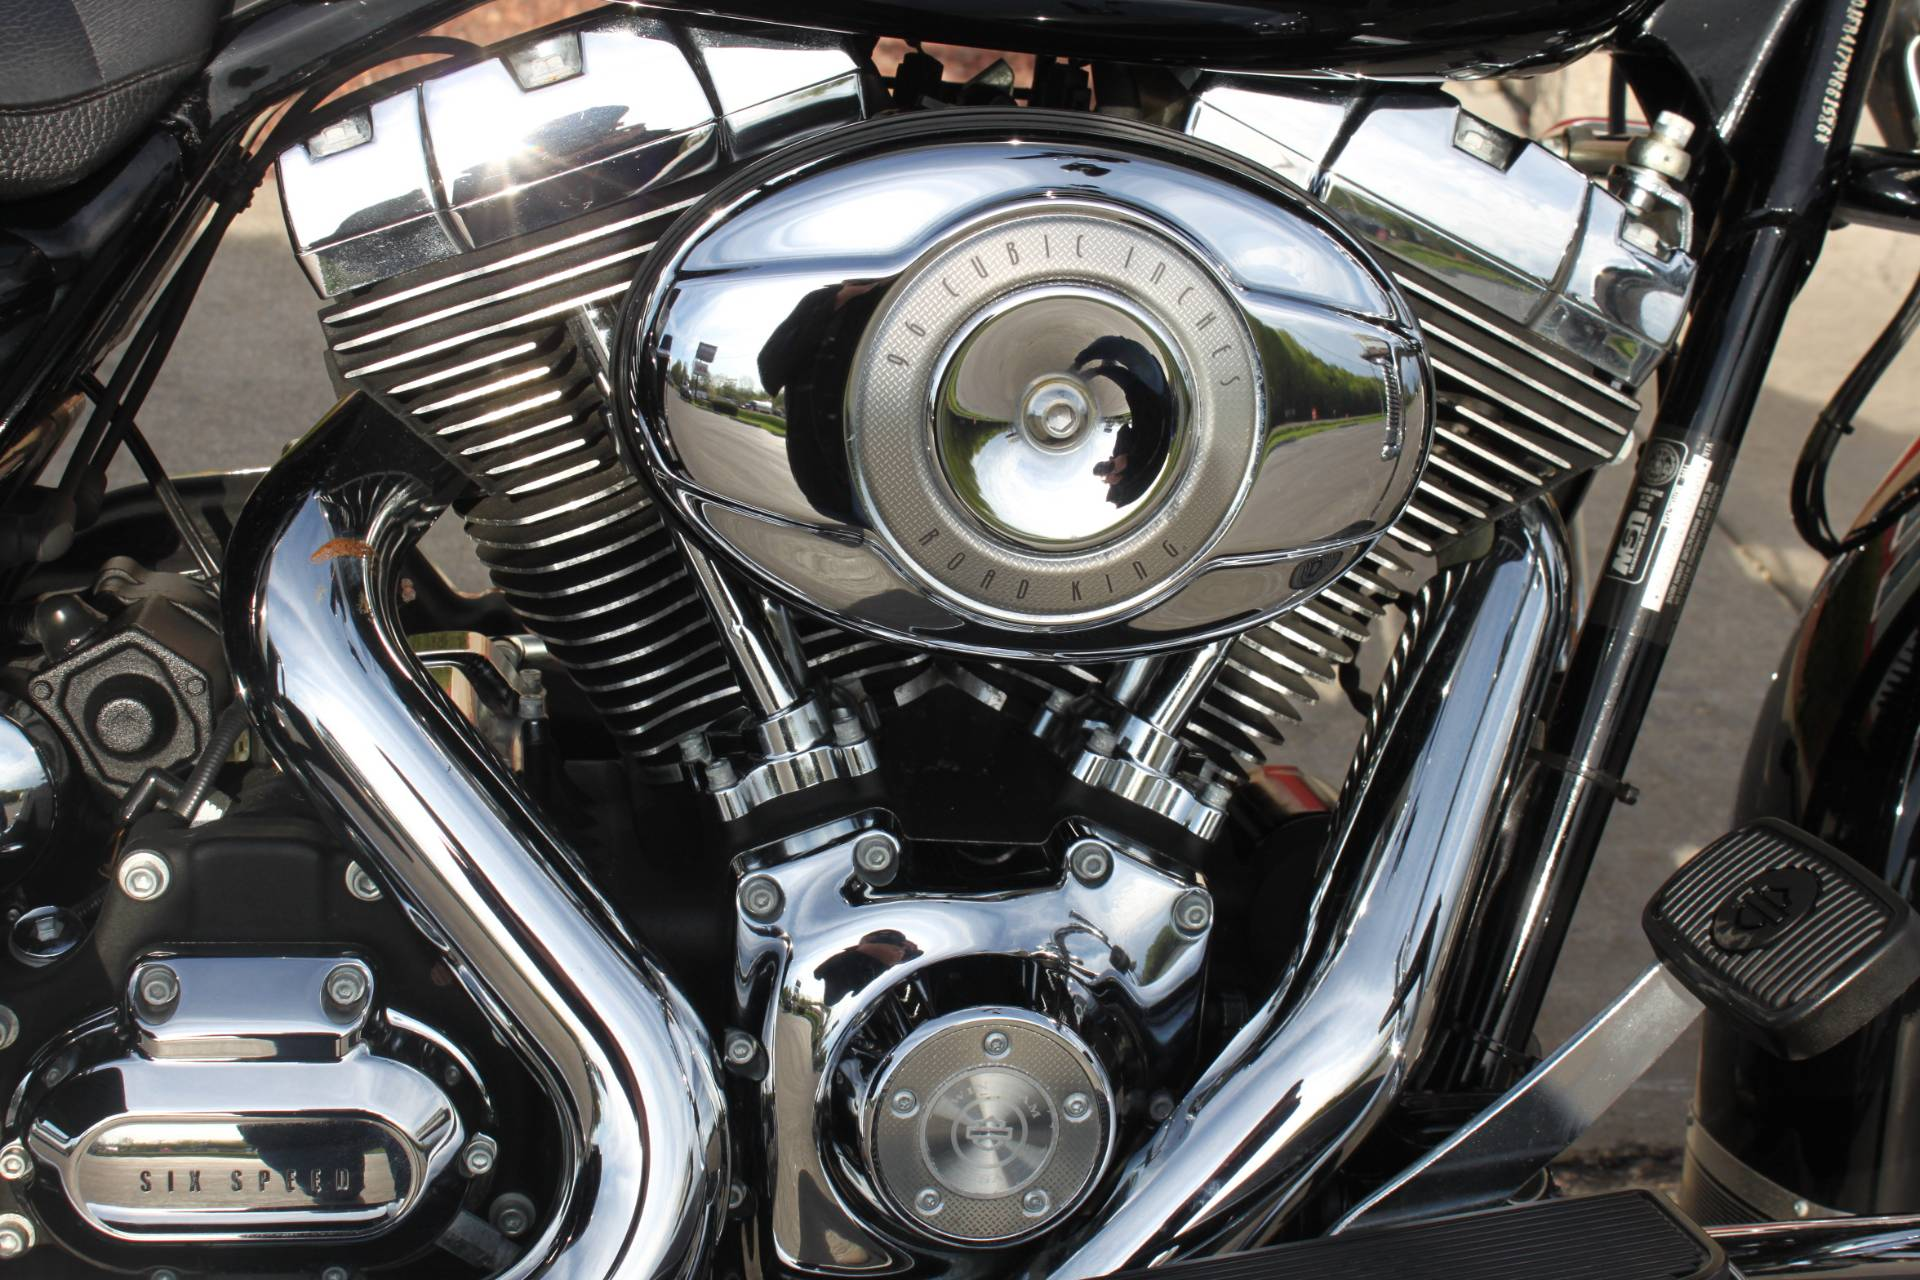 2009 Harley-Davidson Road King 12